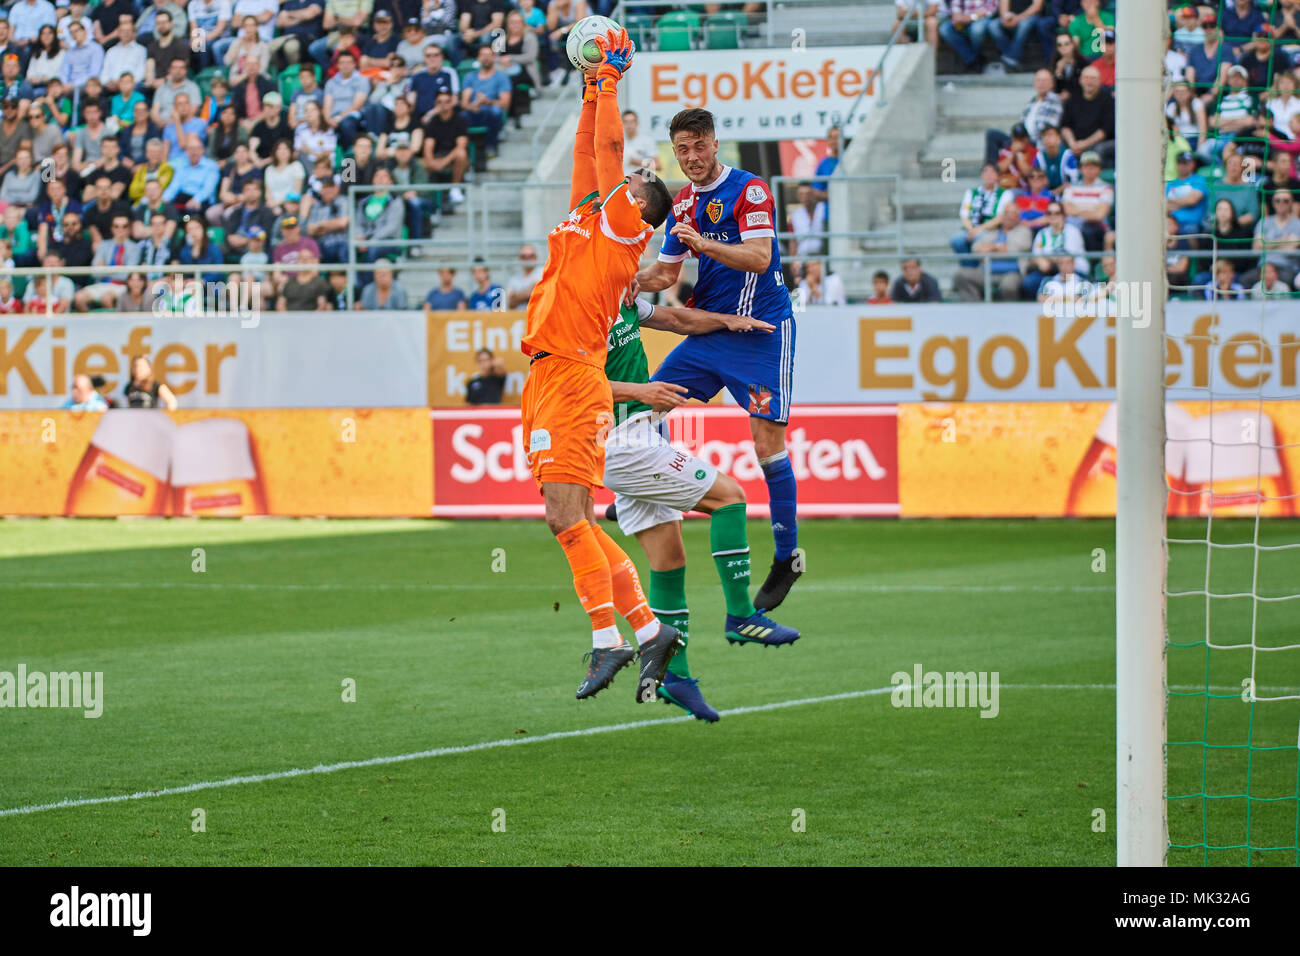 St. Gallen, Switzerland. 6th May 2018. Dejan Stojanovic saves before Ricky van Wolfswinkel during the Raiffeisen Super League Match FC St. Gallen 1879 vs. FC Basel. Credit: Rolf Simeon/Alamy Live News - Stock Image